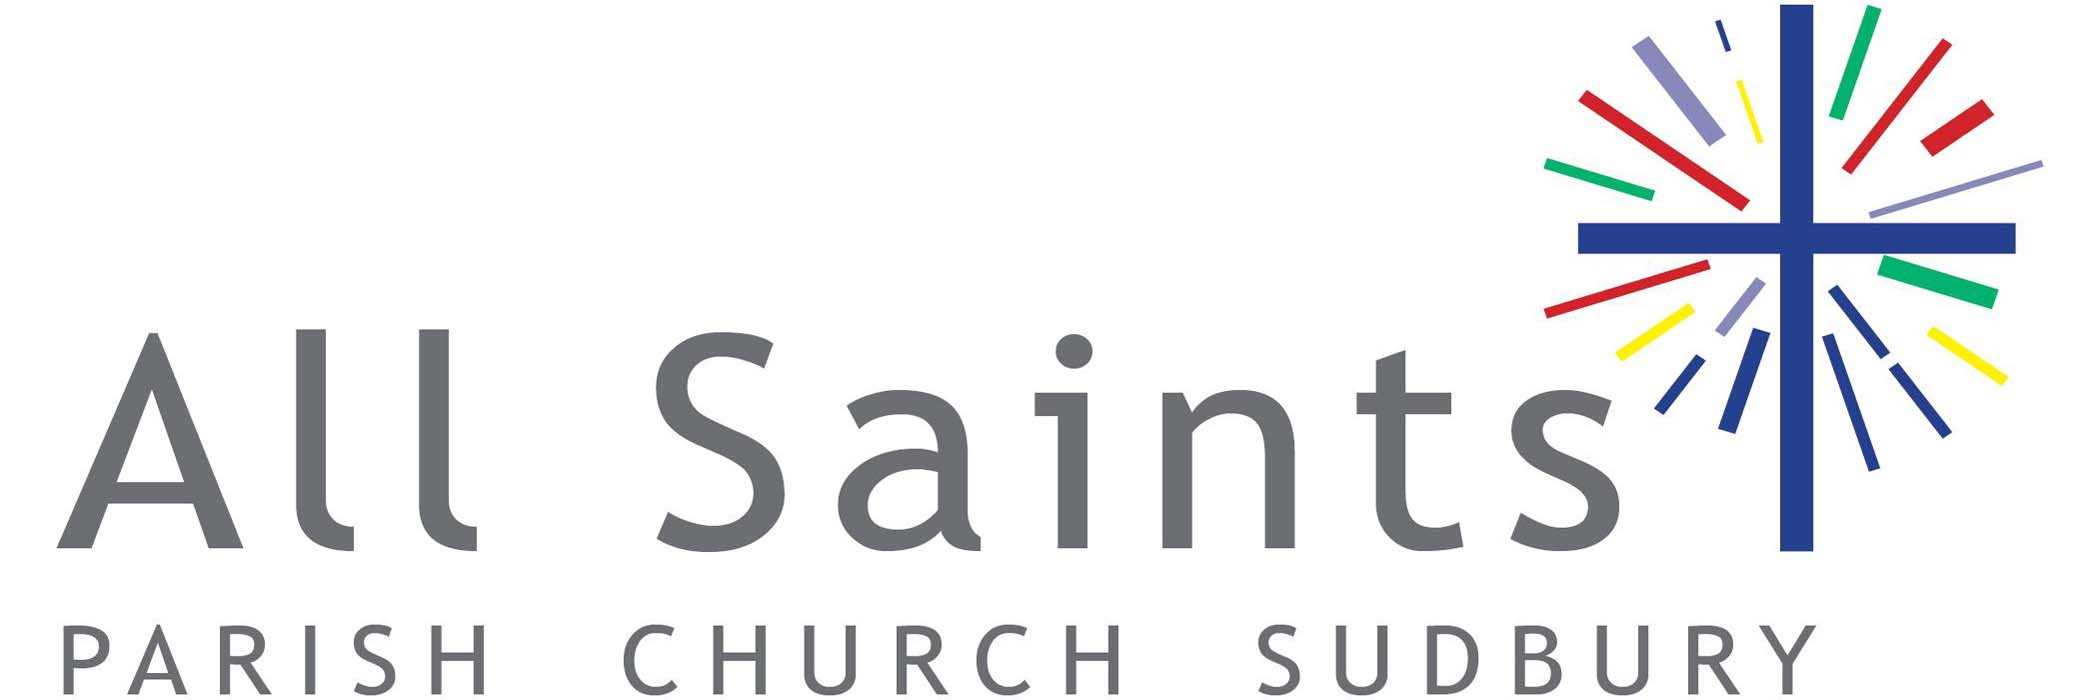 All Saints Parish Church Logo